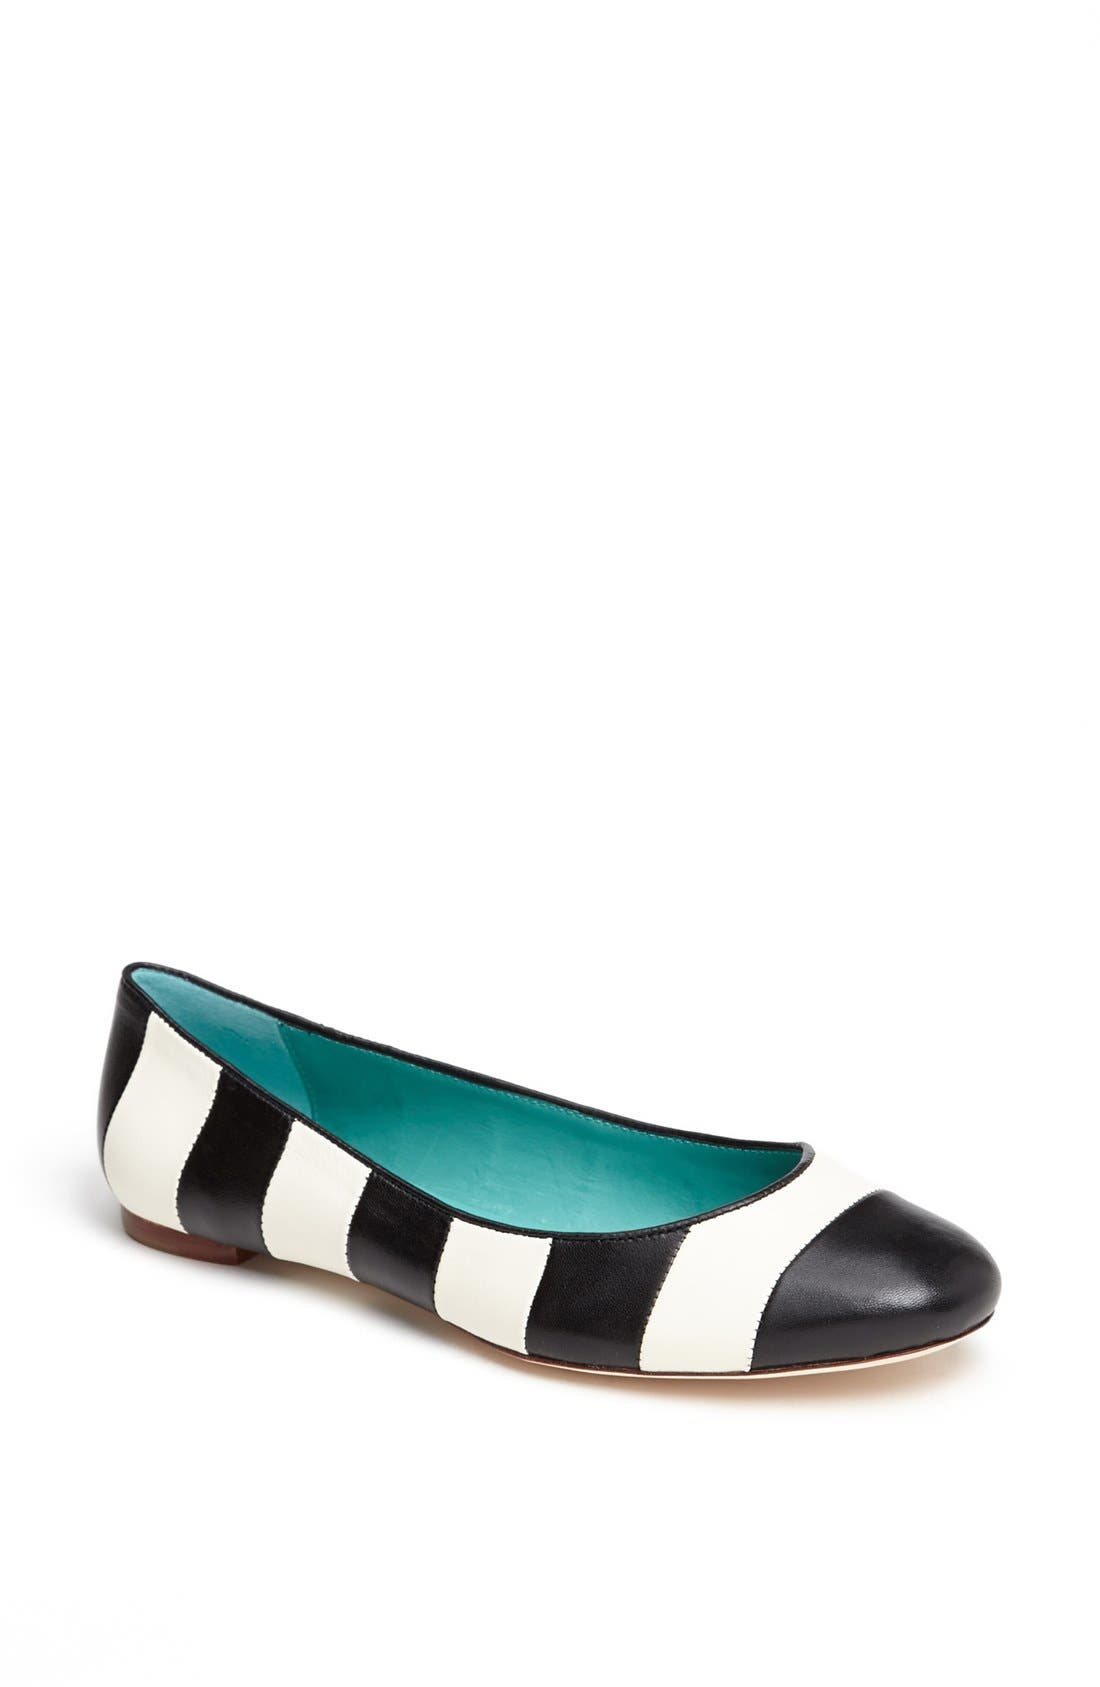 Alternate Image 1 Selected - kate spade new york 'tanya' flat